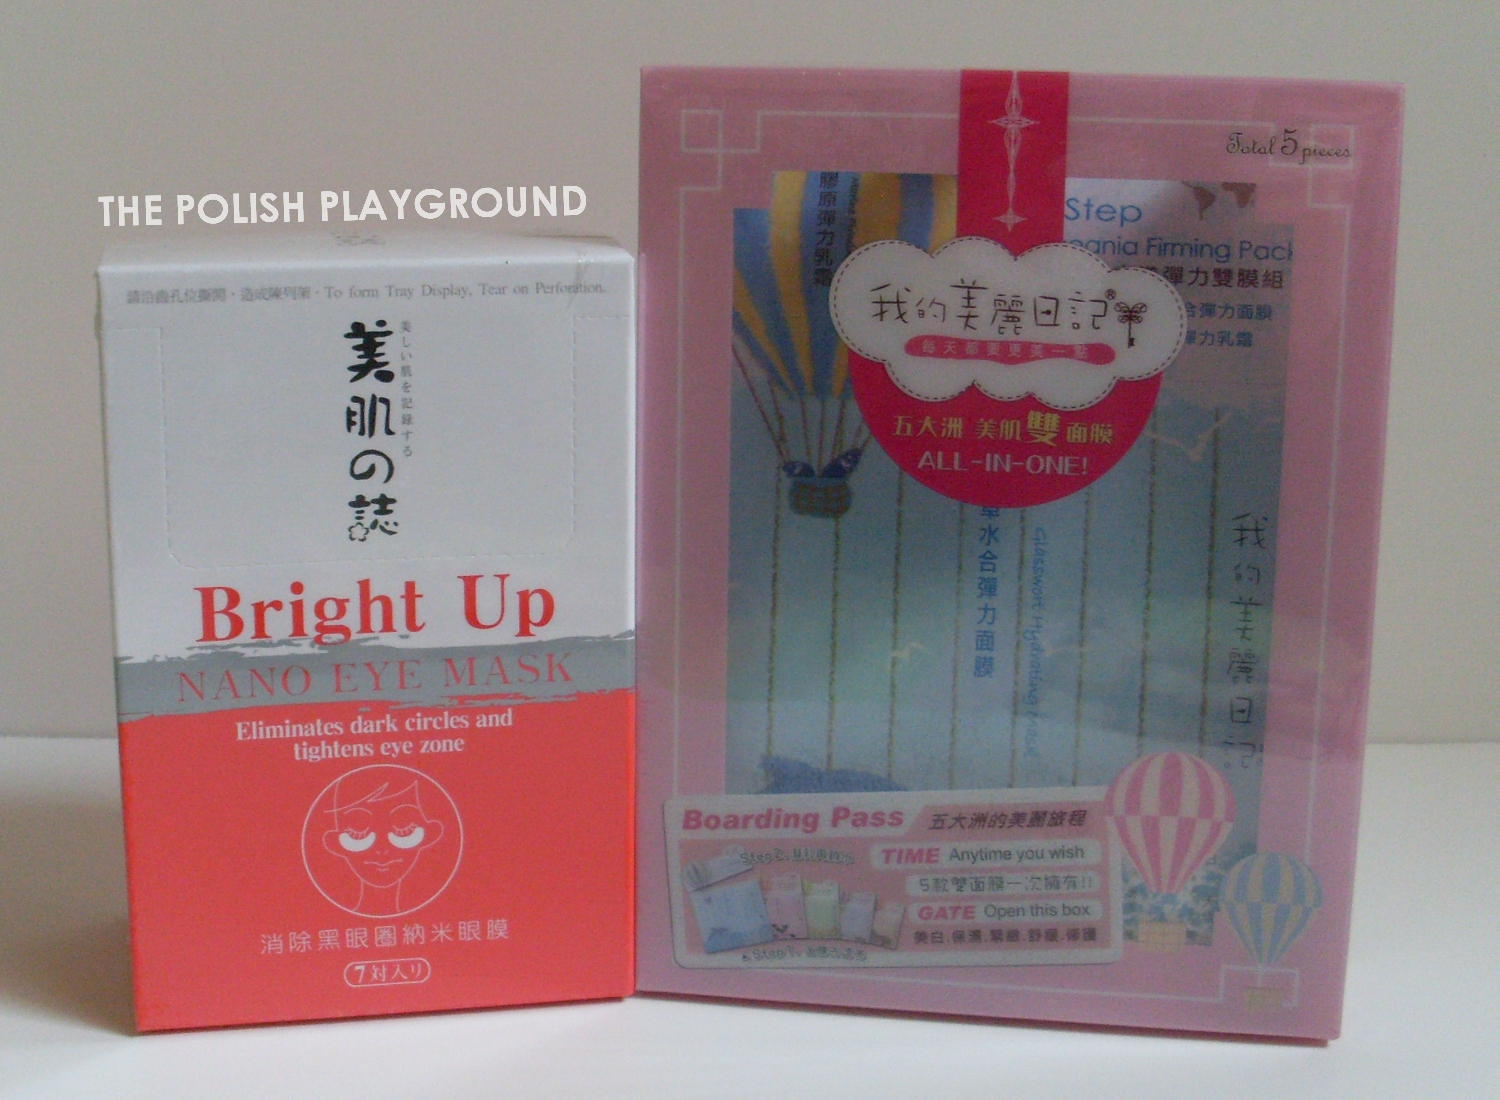 BeautyMate Nano Eye Mask Bright Up Nano Eye Mask, My Beauty Diary 2 Step All-in-One Mast Set